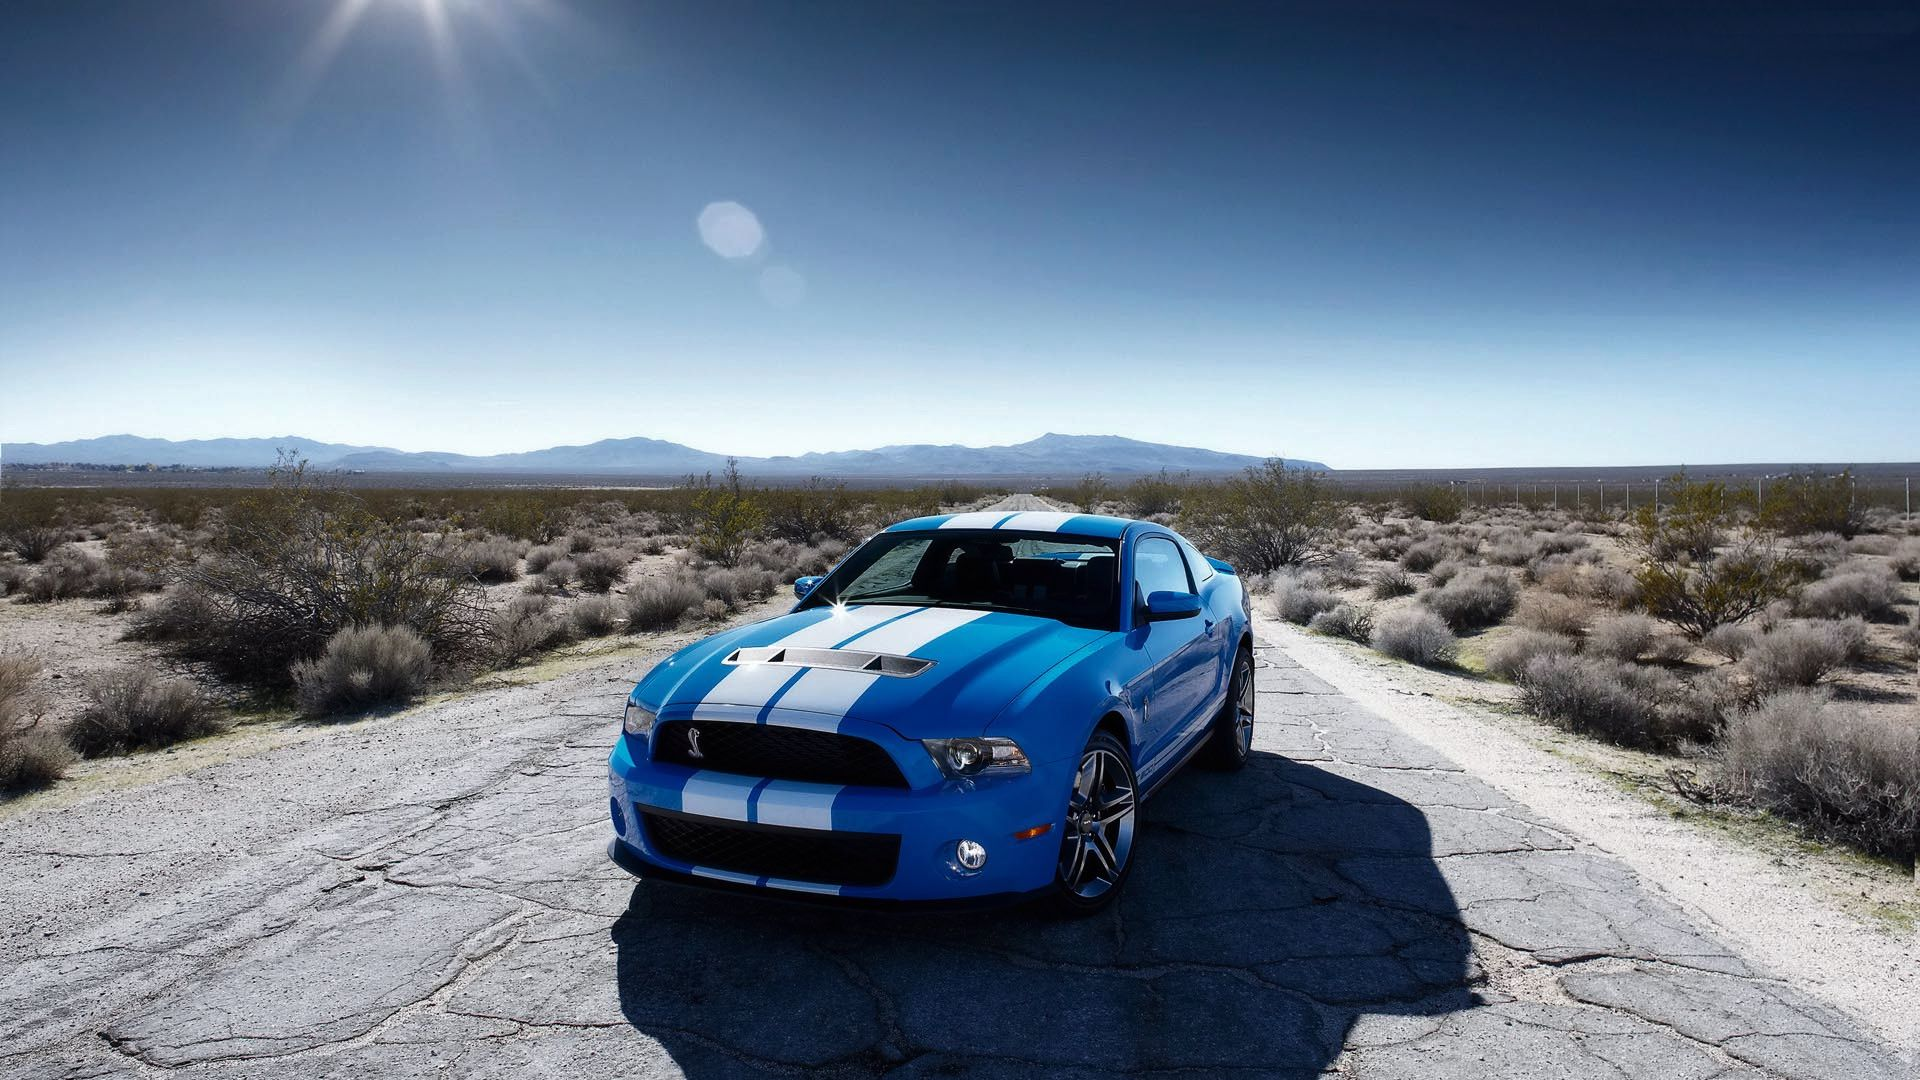 Ford Mustang Shelby >> [47+] Mustang Need for Speed Wallpaper on WallpaperSafari